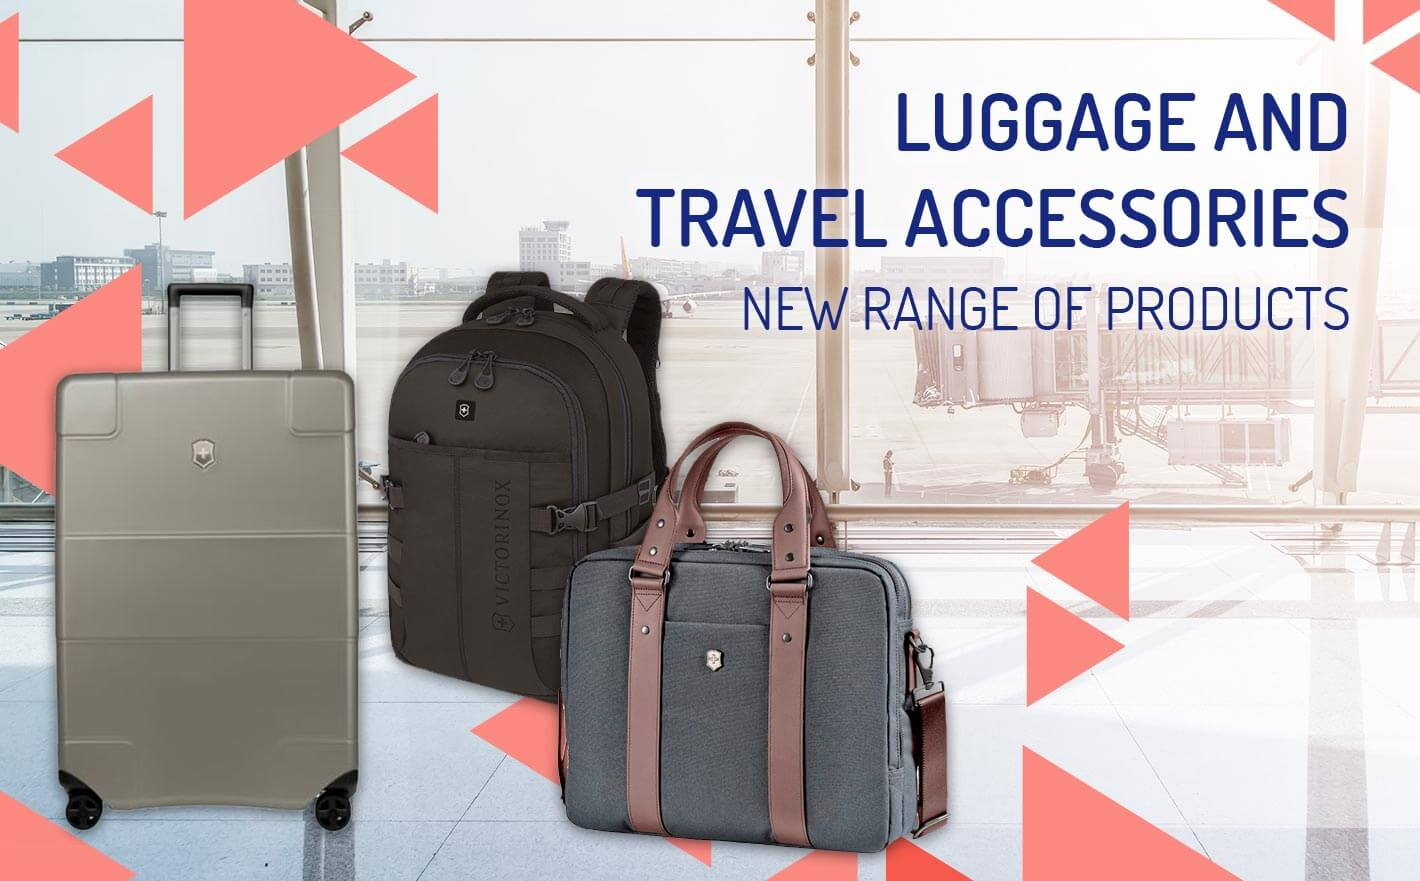 New range of luggage and travel accessories at Reysan